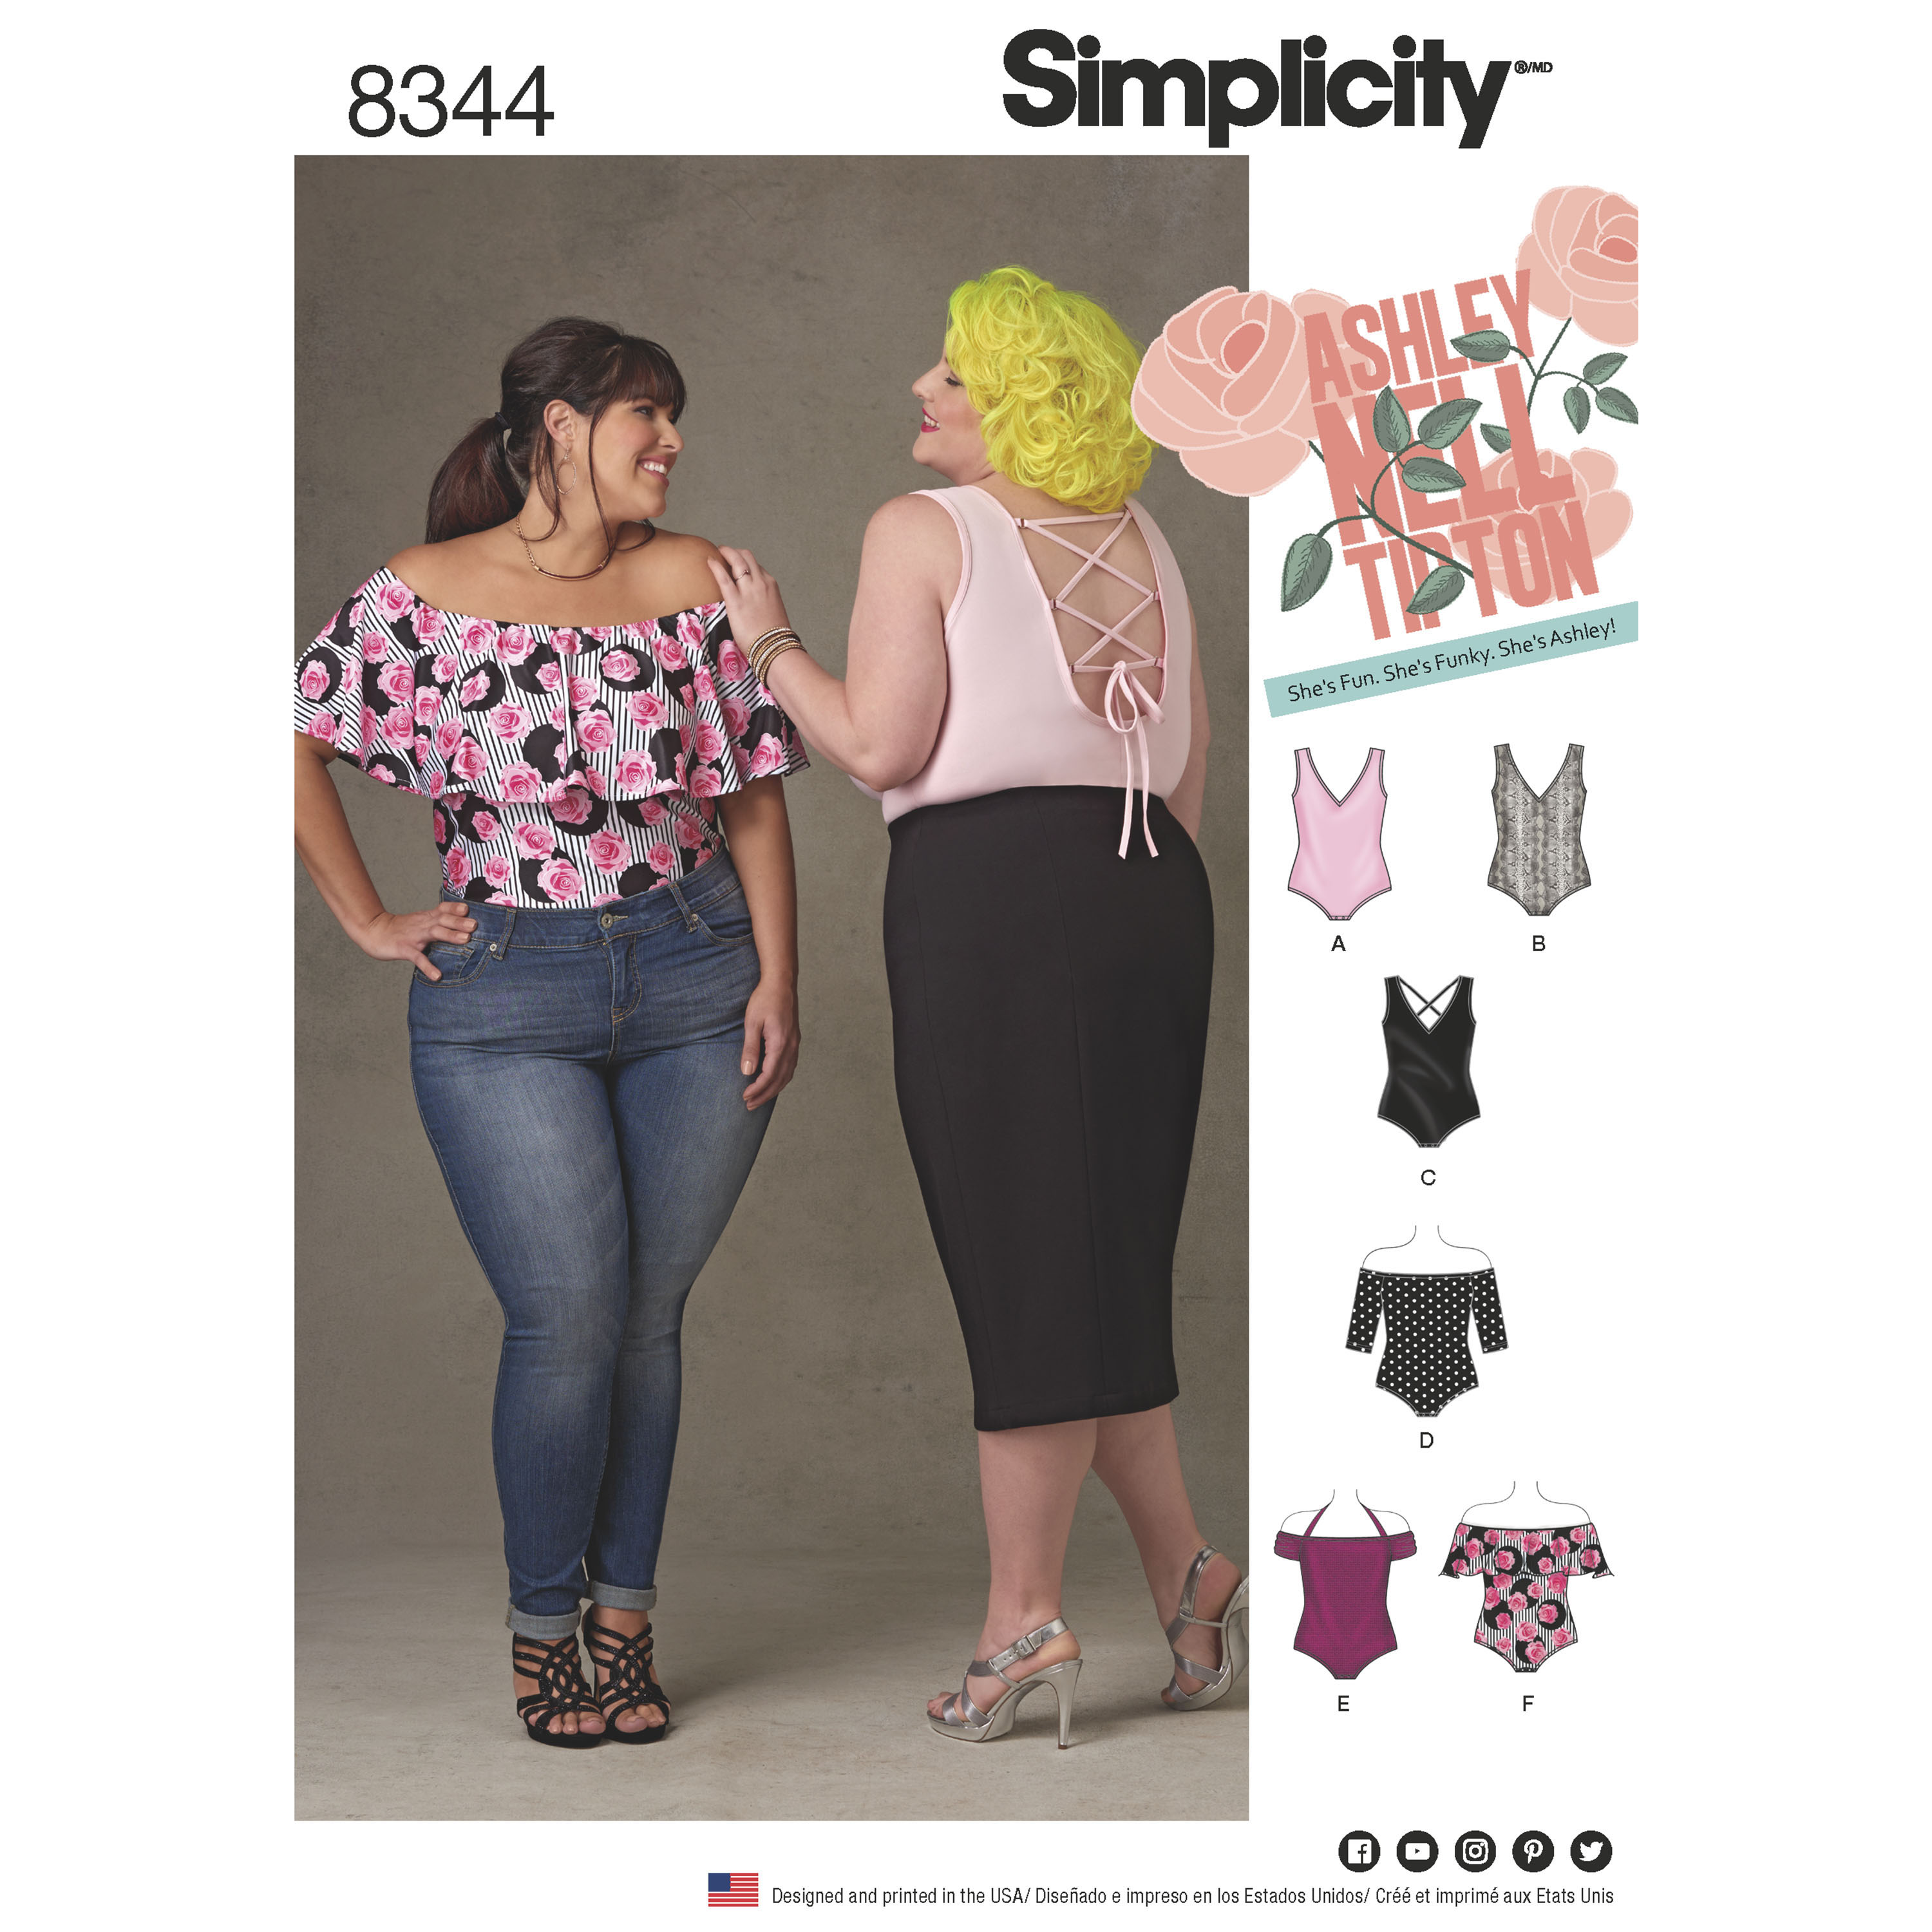 Simplicity Pattern 8344 Plus Size Knit Bodysuits by Ashley Nell Tipton 9dad5f1ba